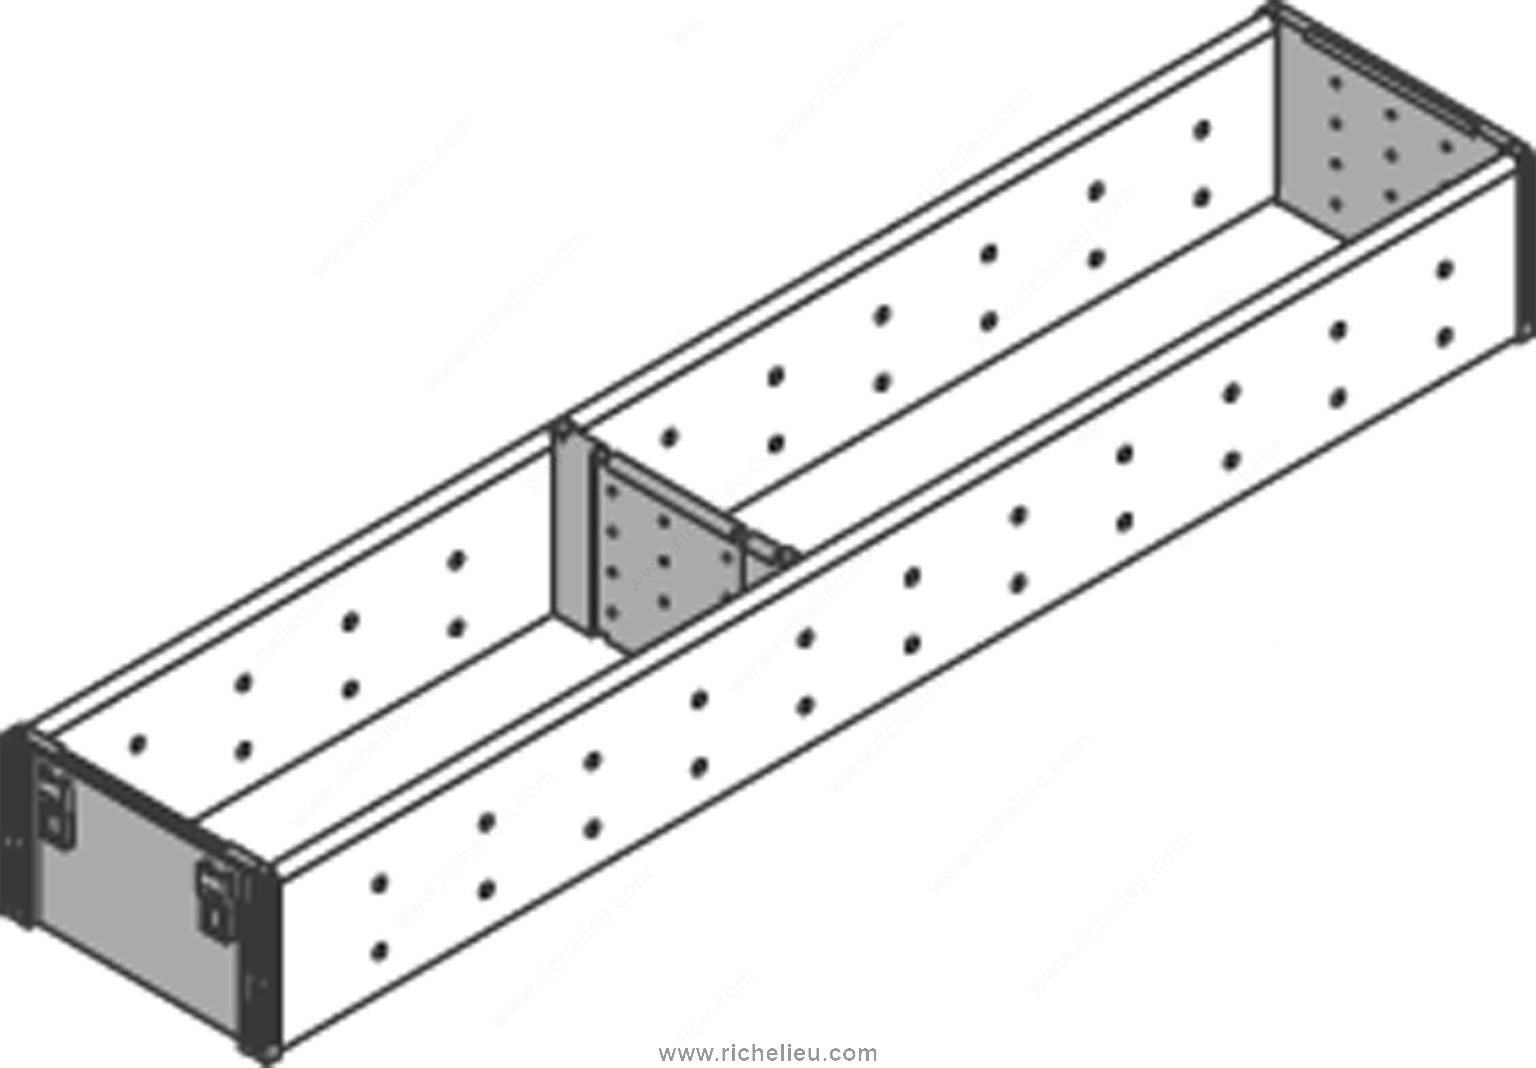 Cutlery Divider for Drawers